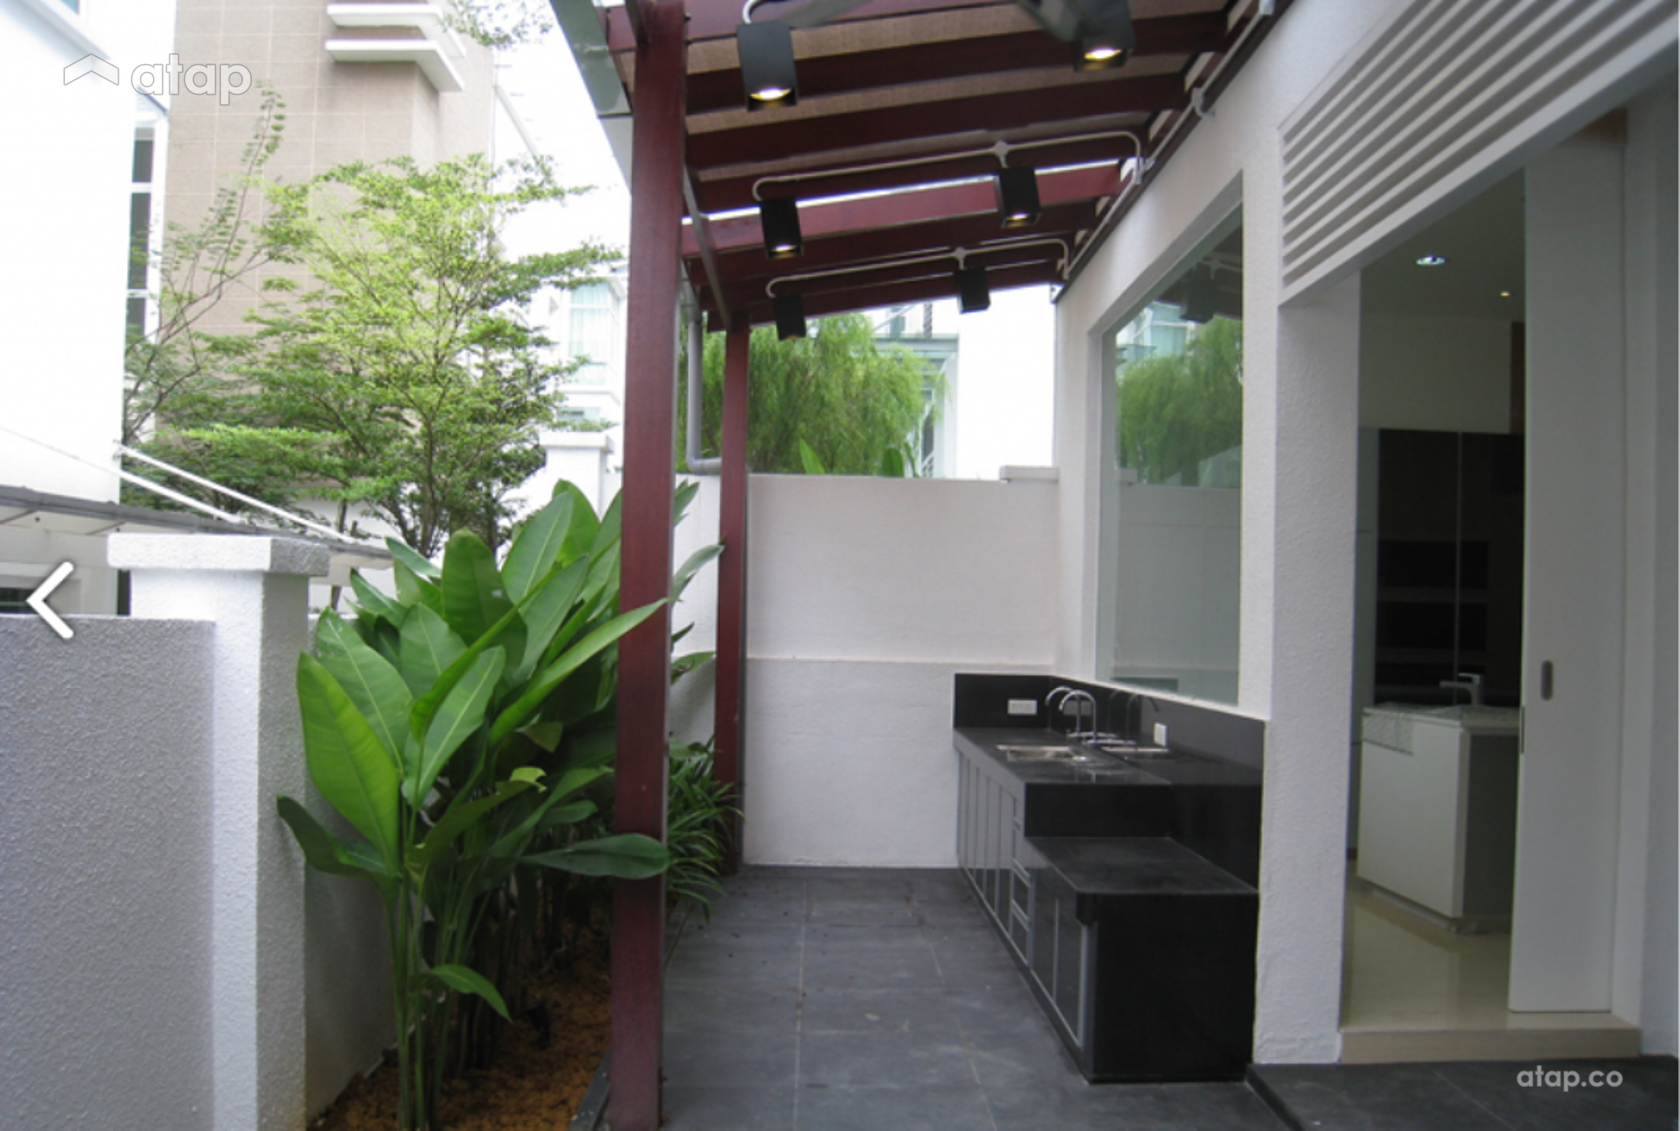 outdoor kitchen design malaysia semi detached design ideas amp photos malaysia atap co 498